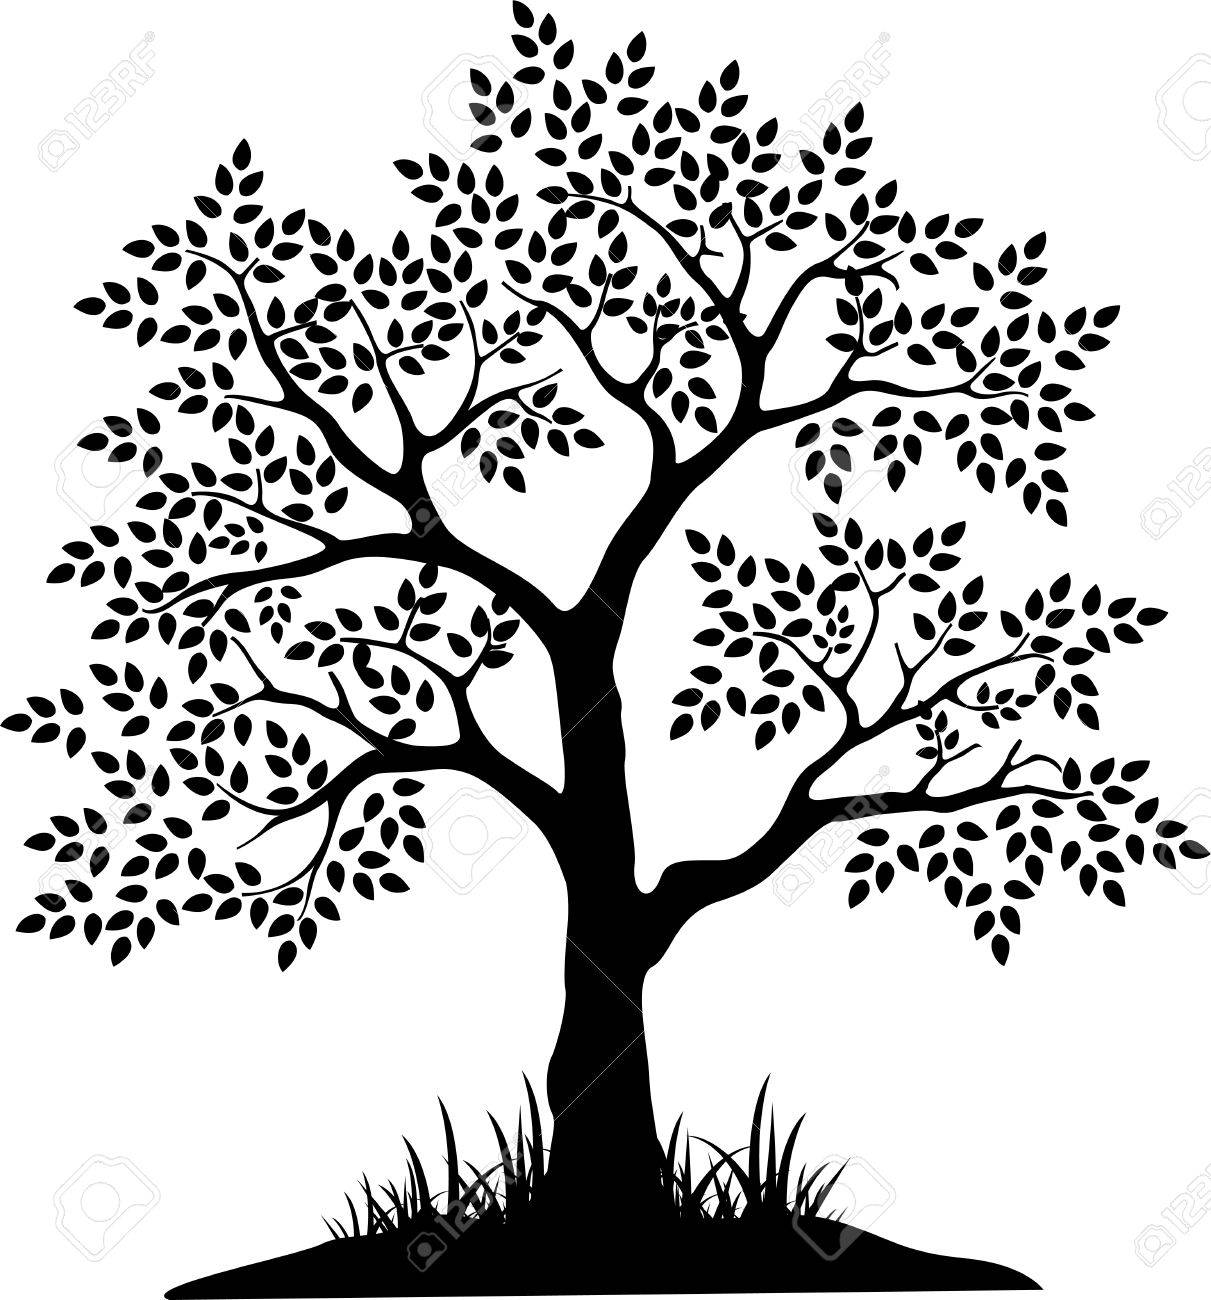 black tree silhouette for your design - 41506248